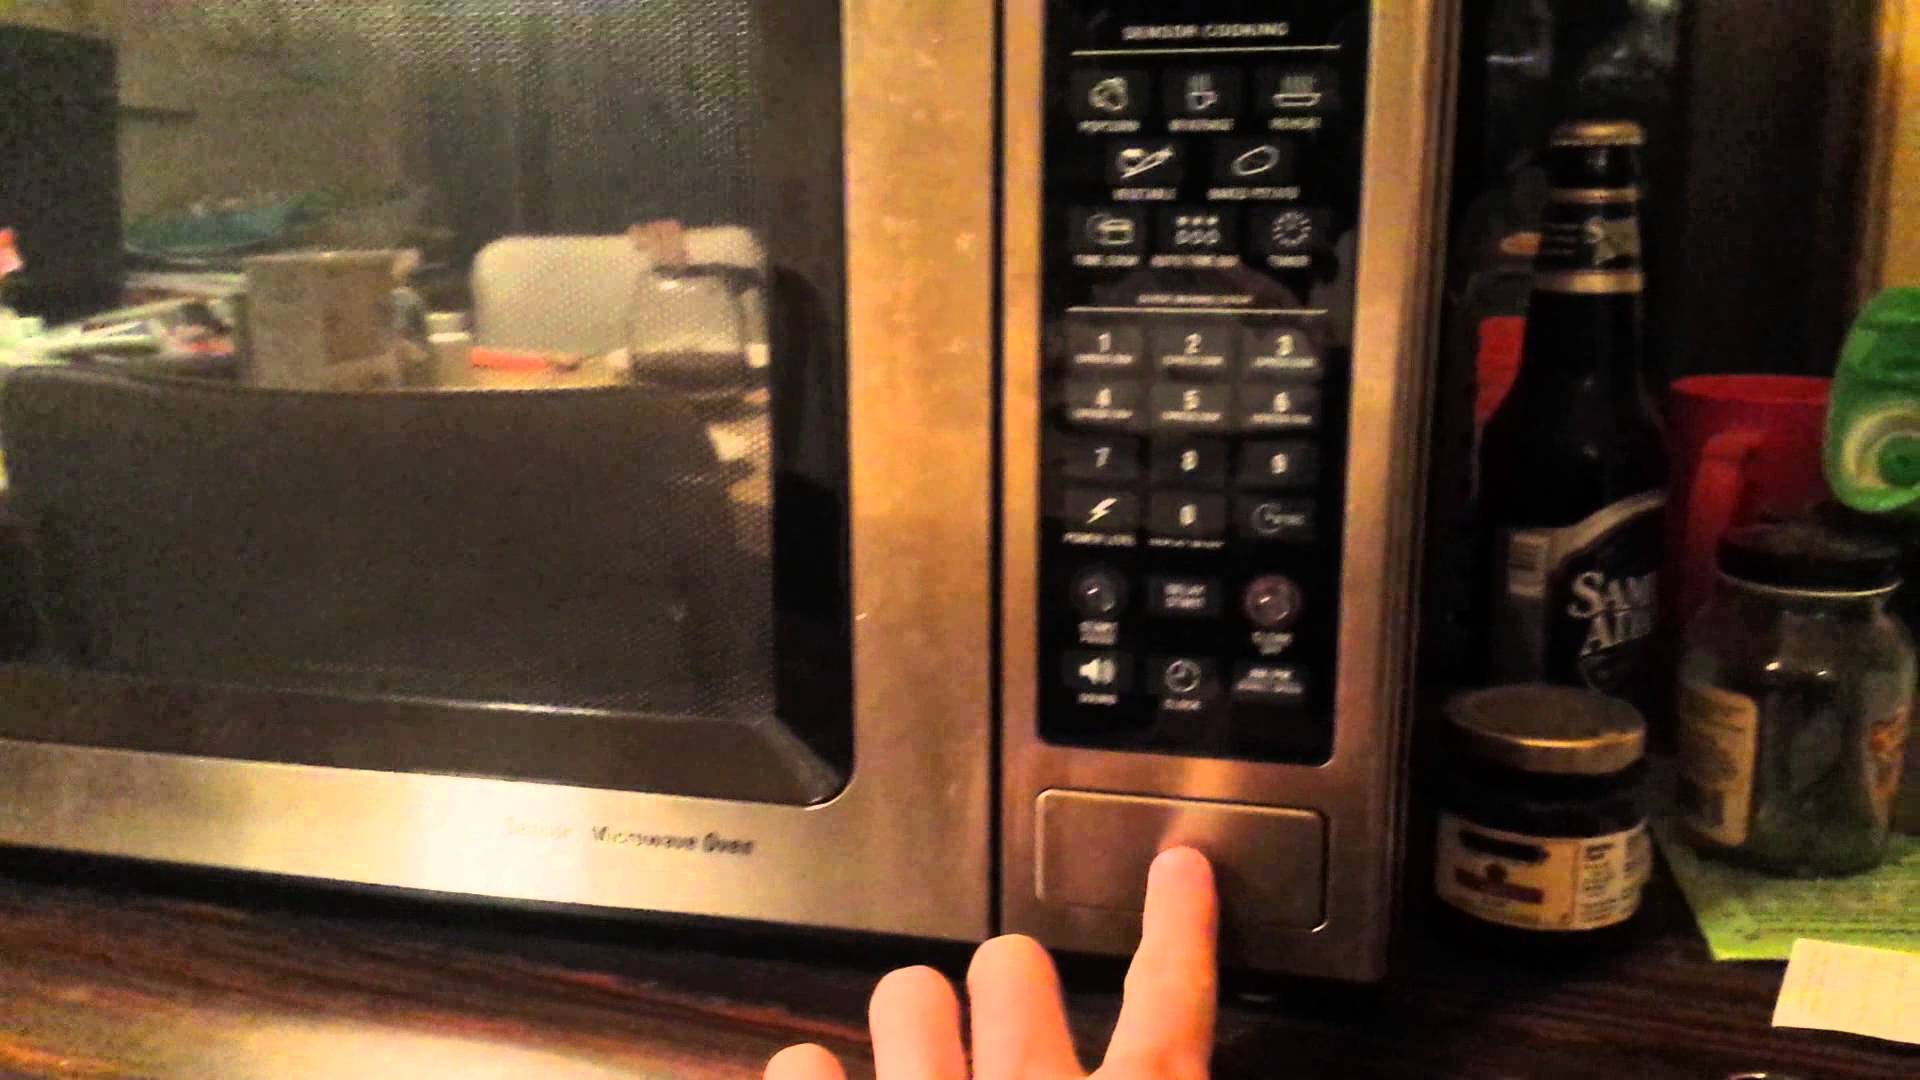 kitchenaid microwave repair service modern kitchen furniture